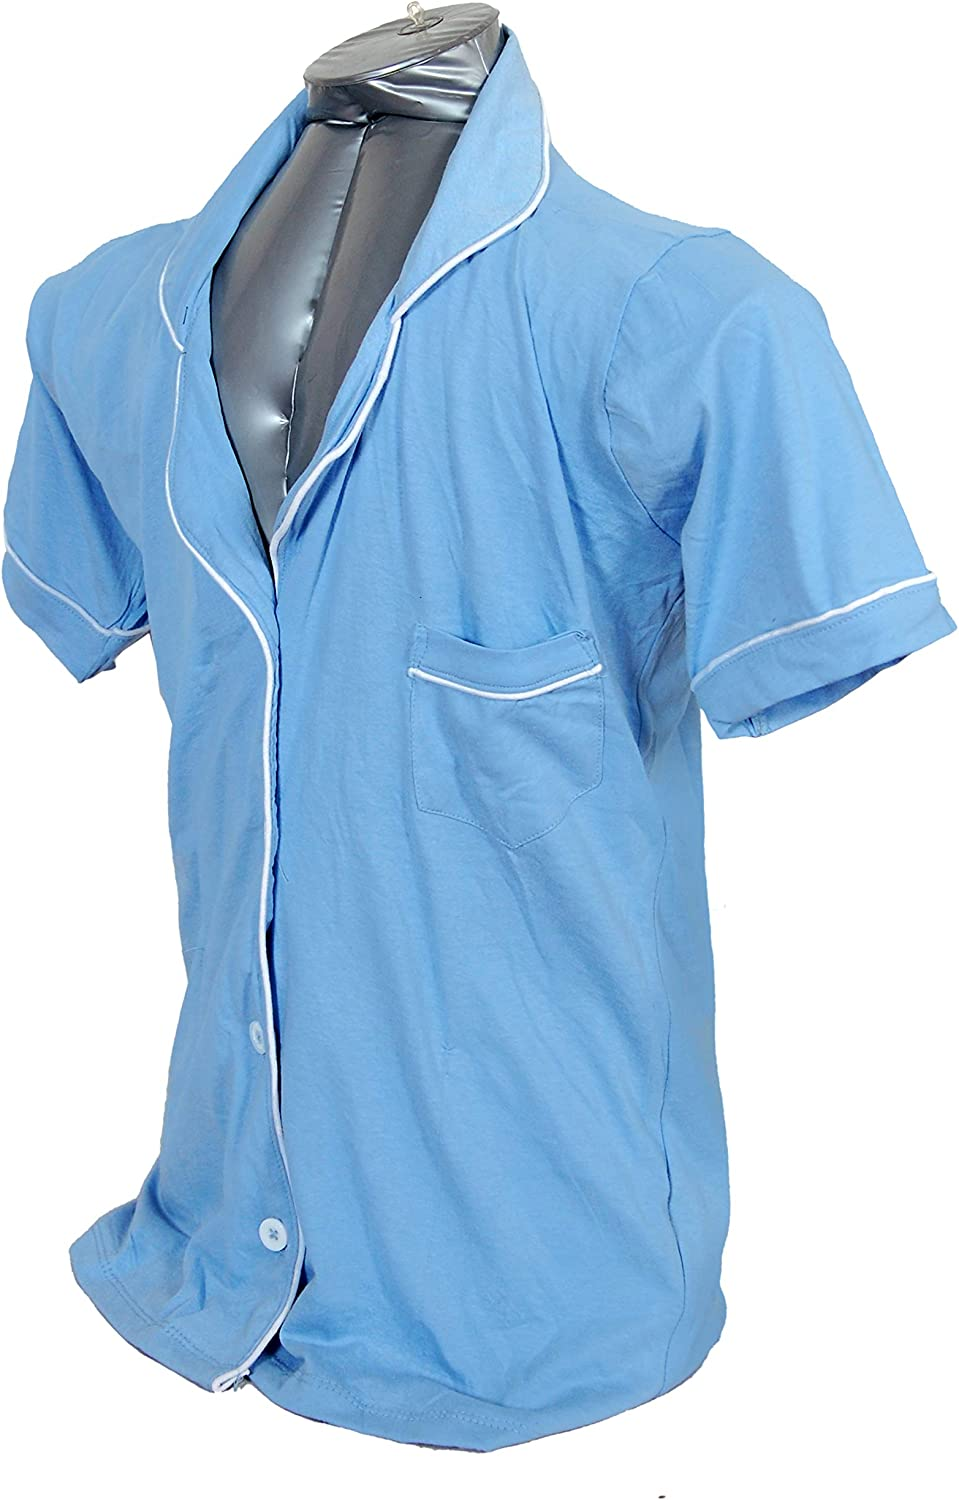 USBD Post Mastectomy Surgery Recovery Shirt Camisole